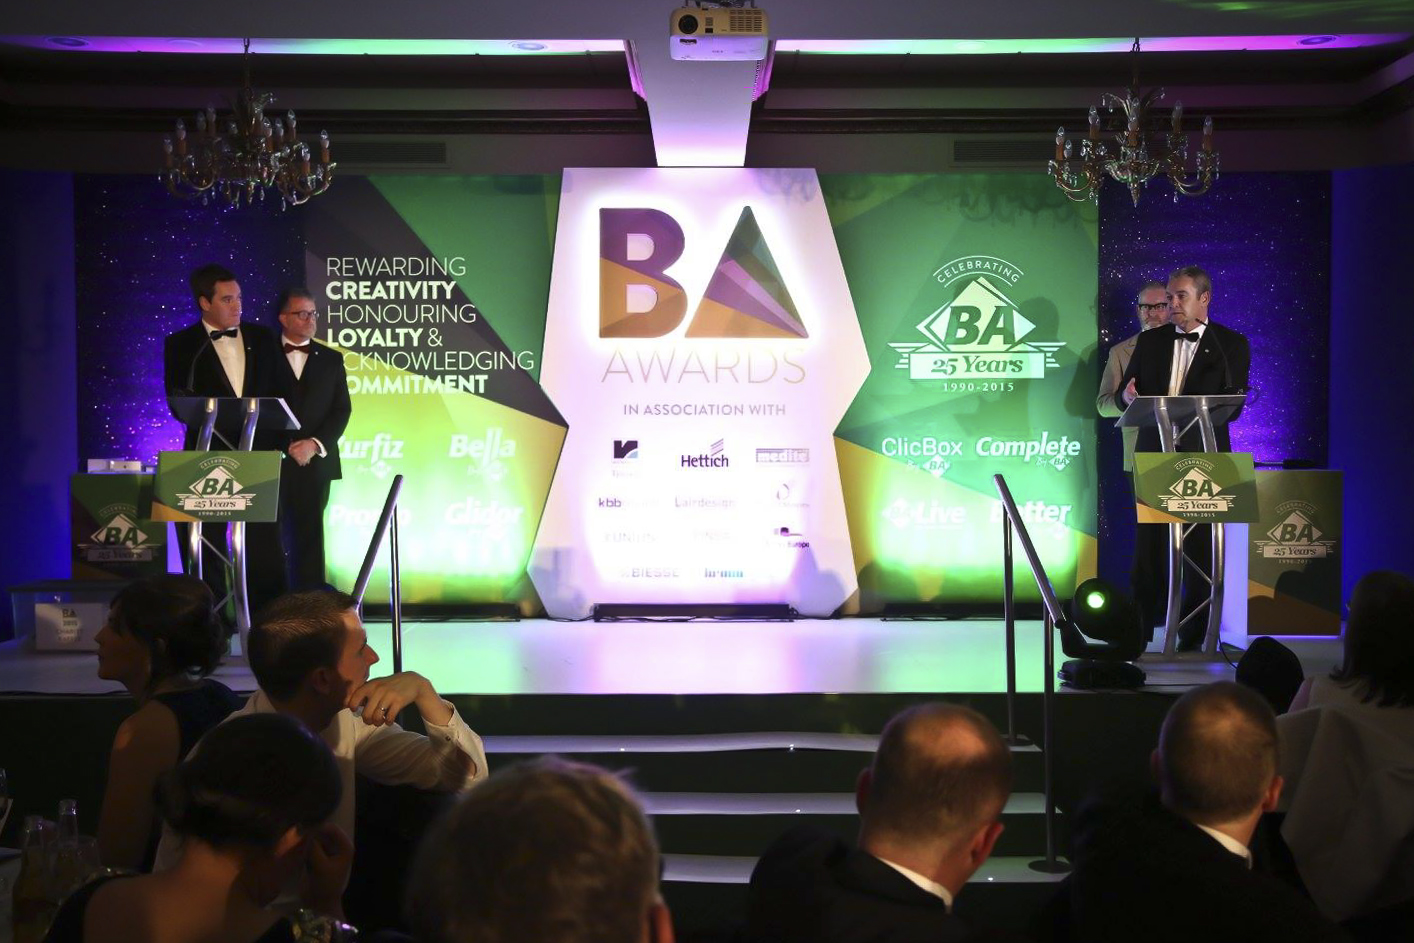 BA Awards headline image